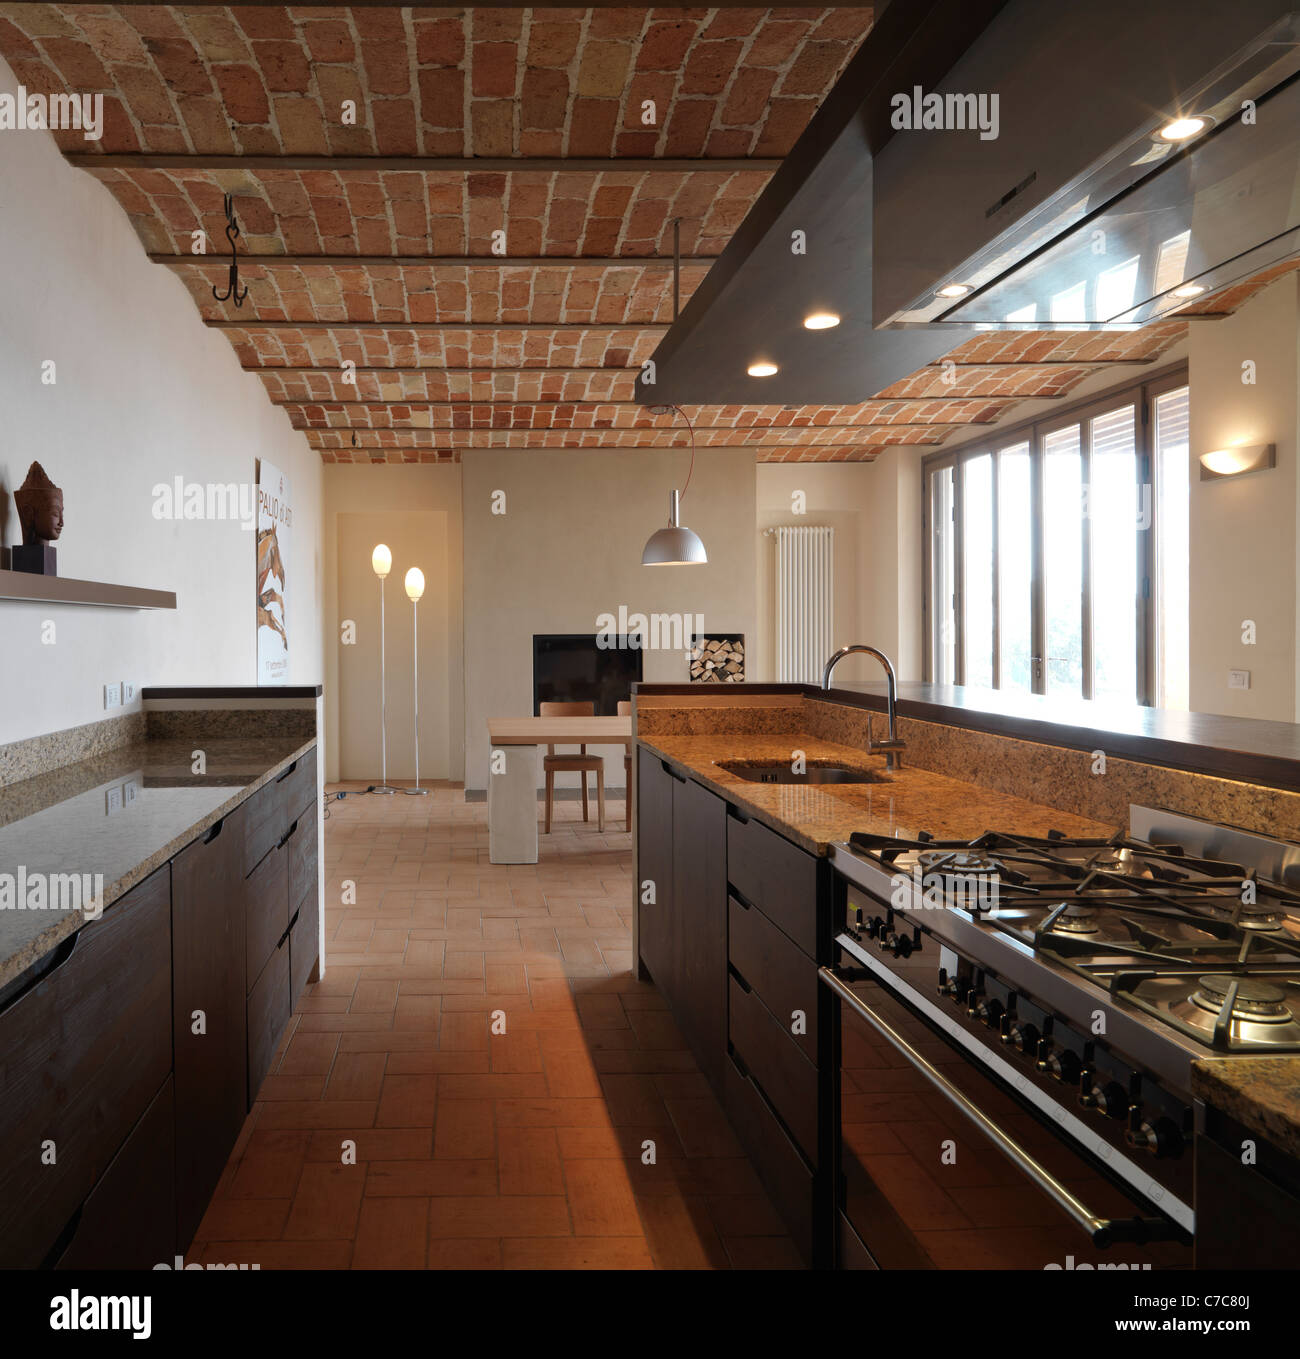 Modern Kitchen In The Rustic House With Terracotta Ceiling